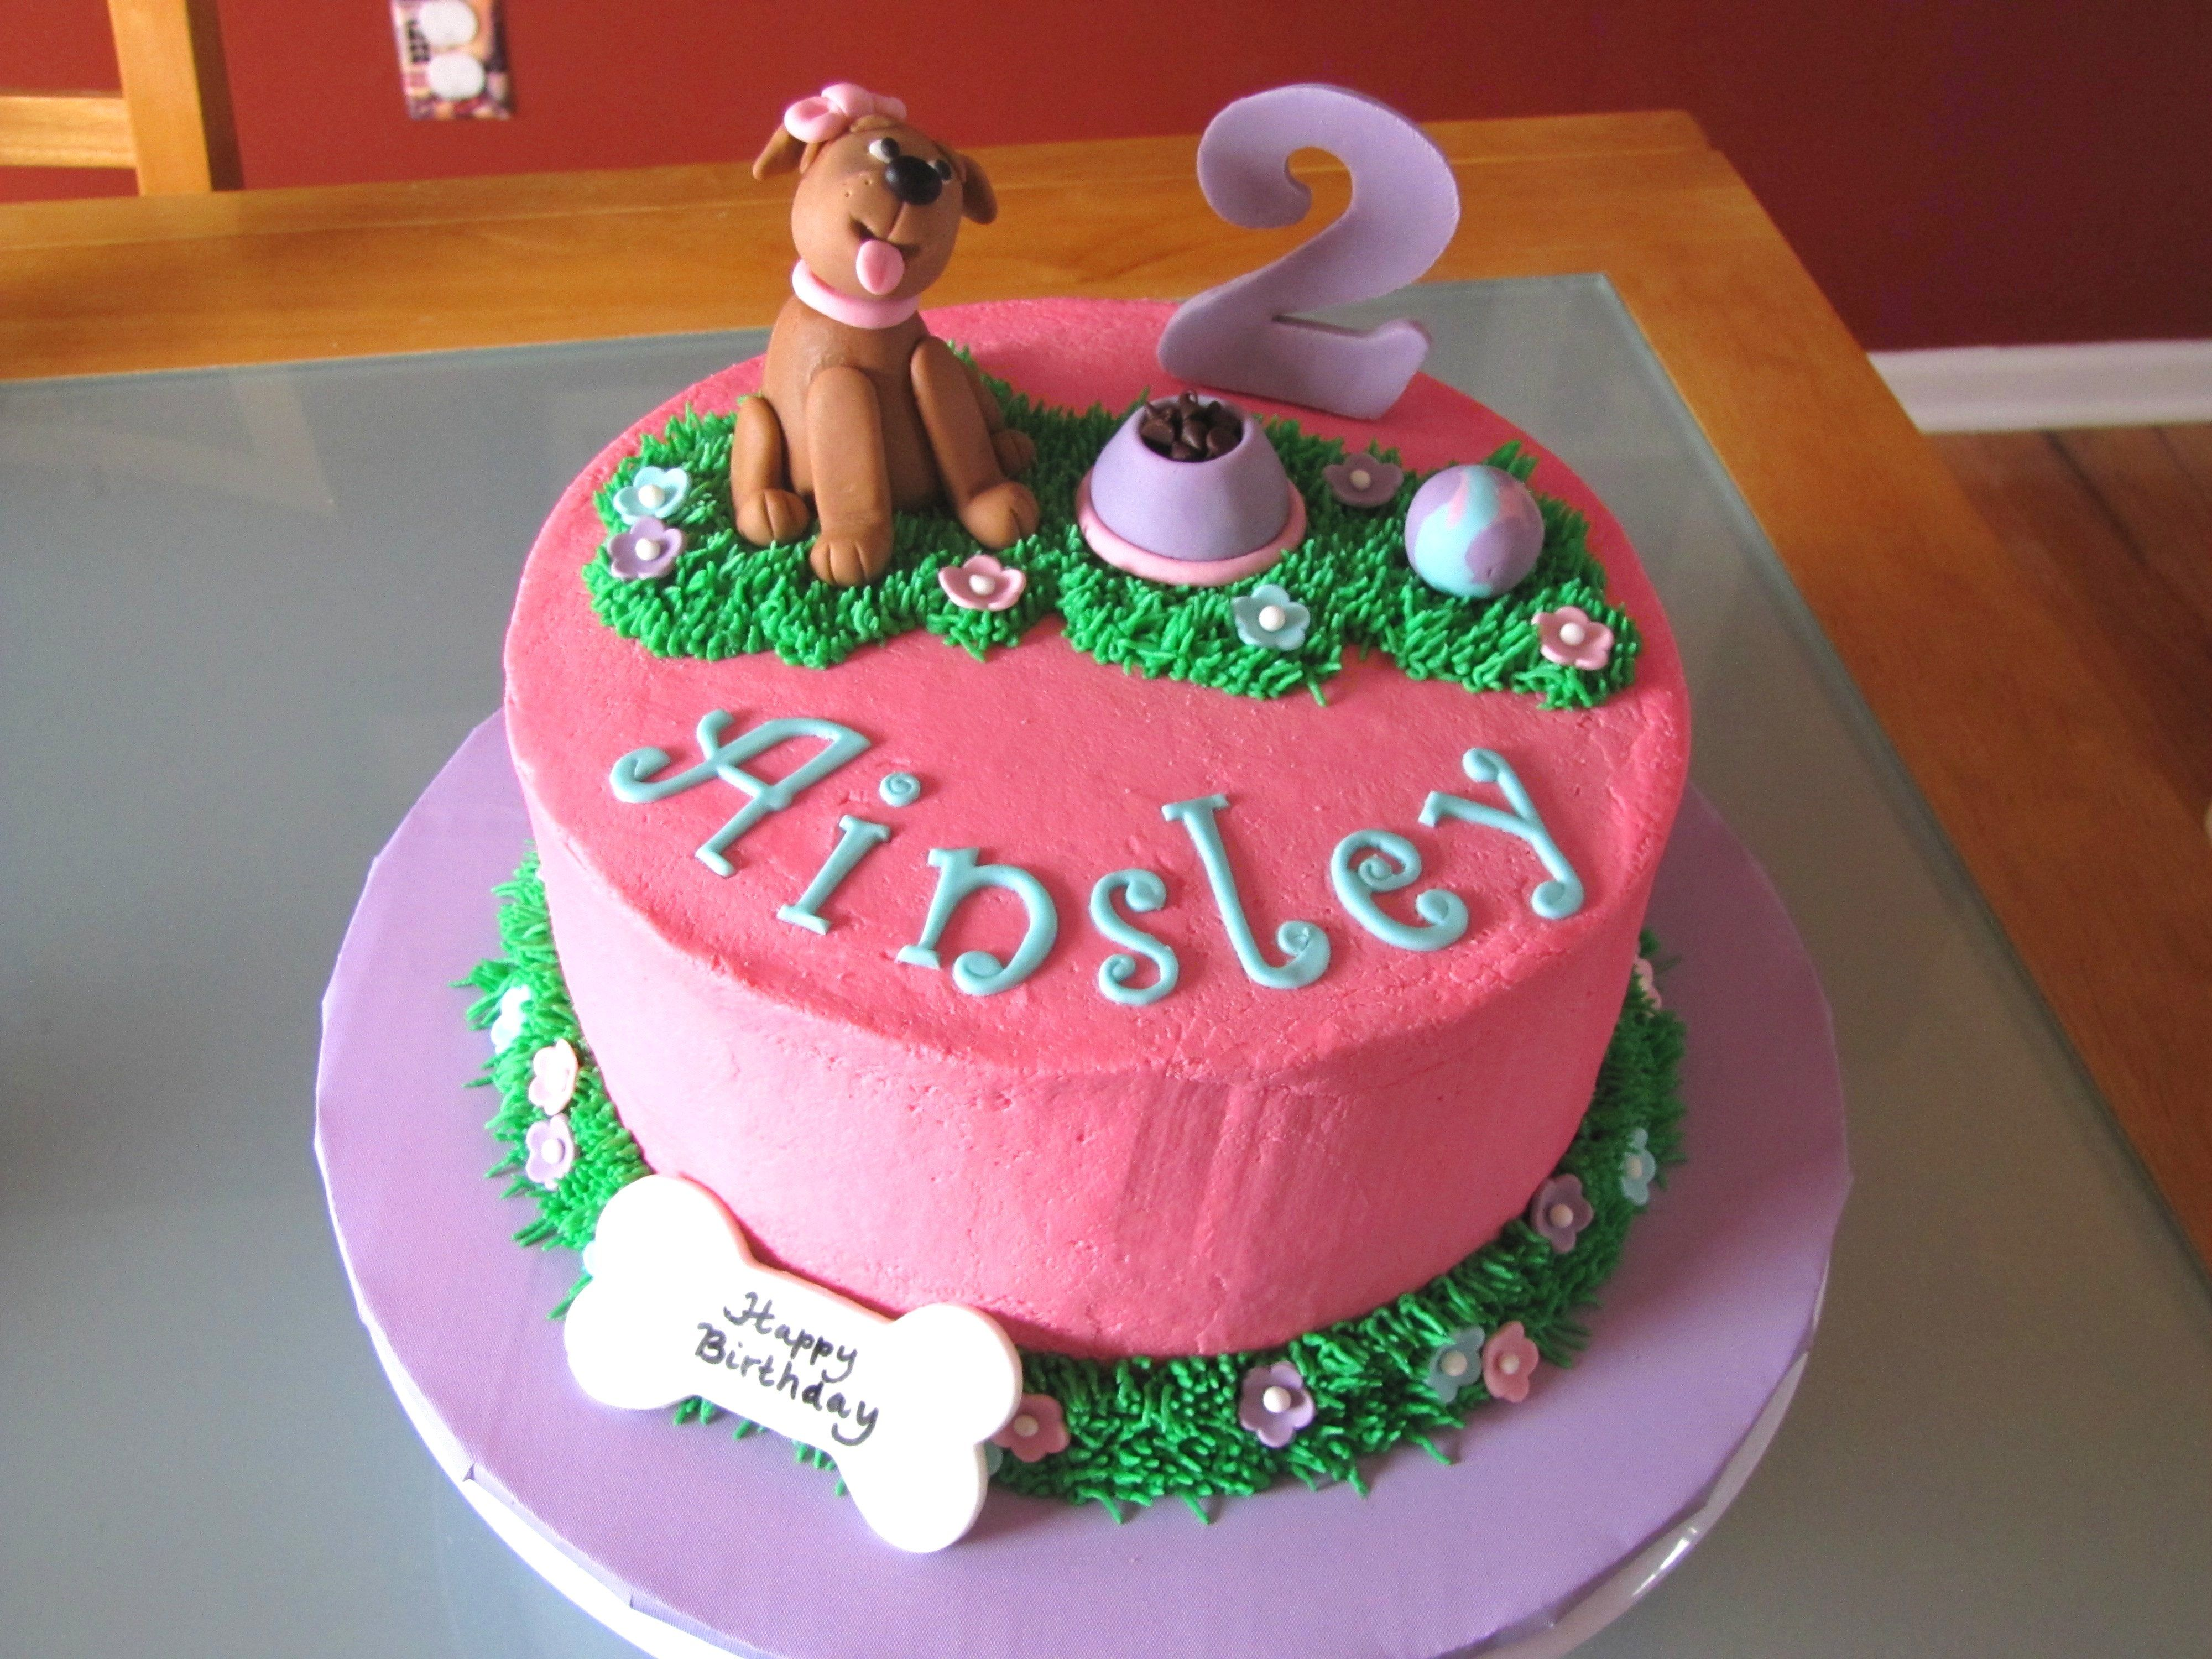 Dogthemed 2nd Birthday Cake This is the girl version of the 2nd